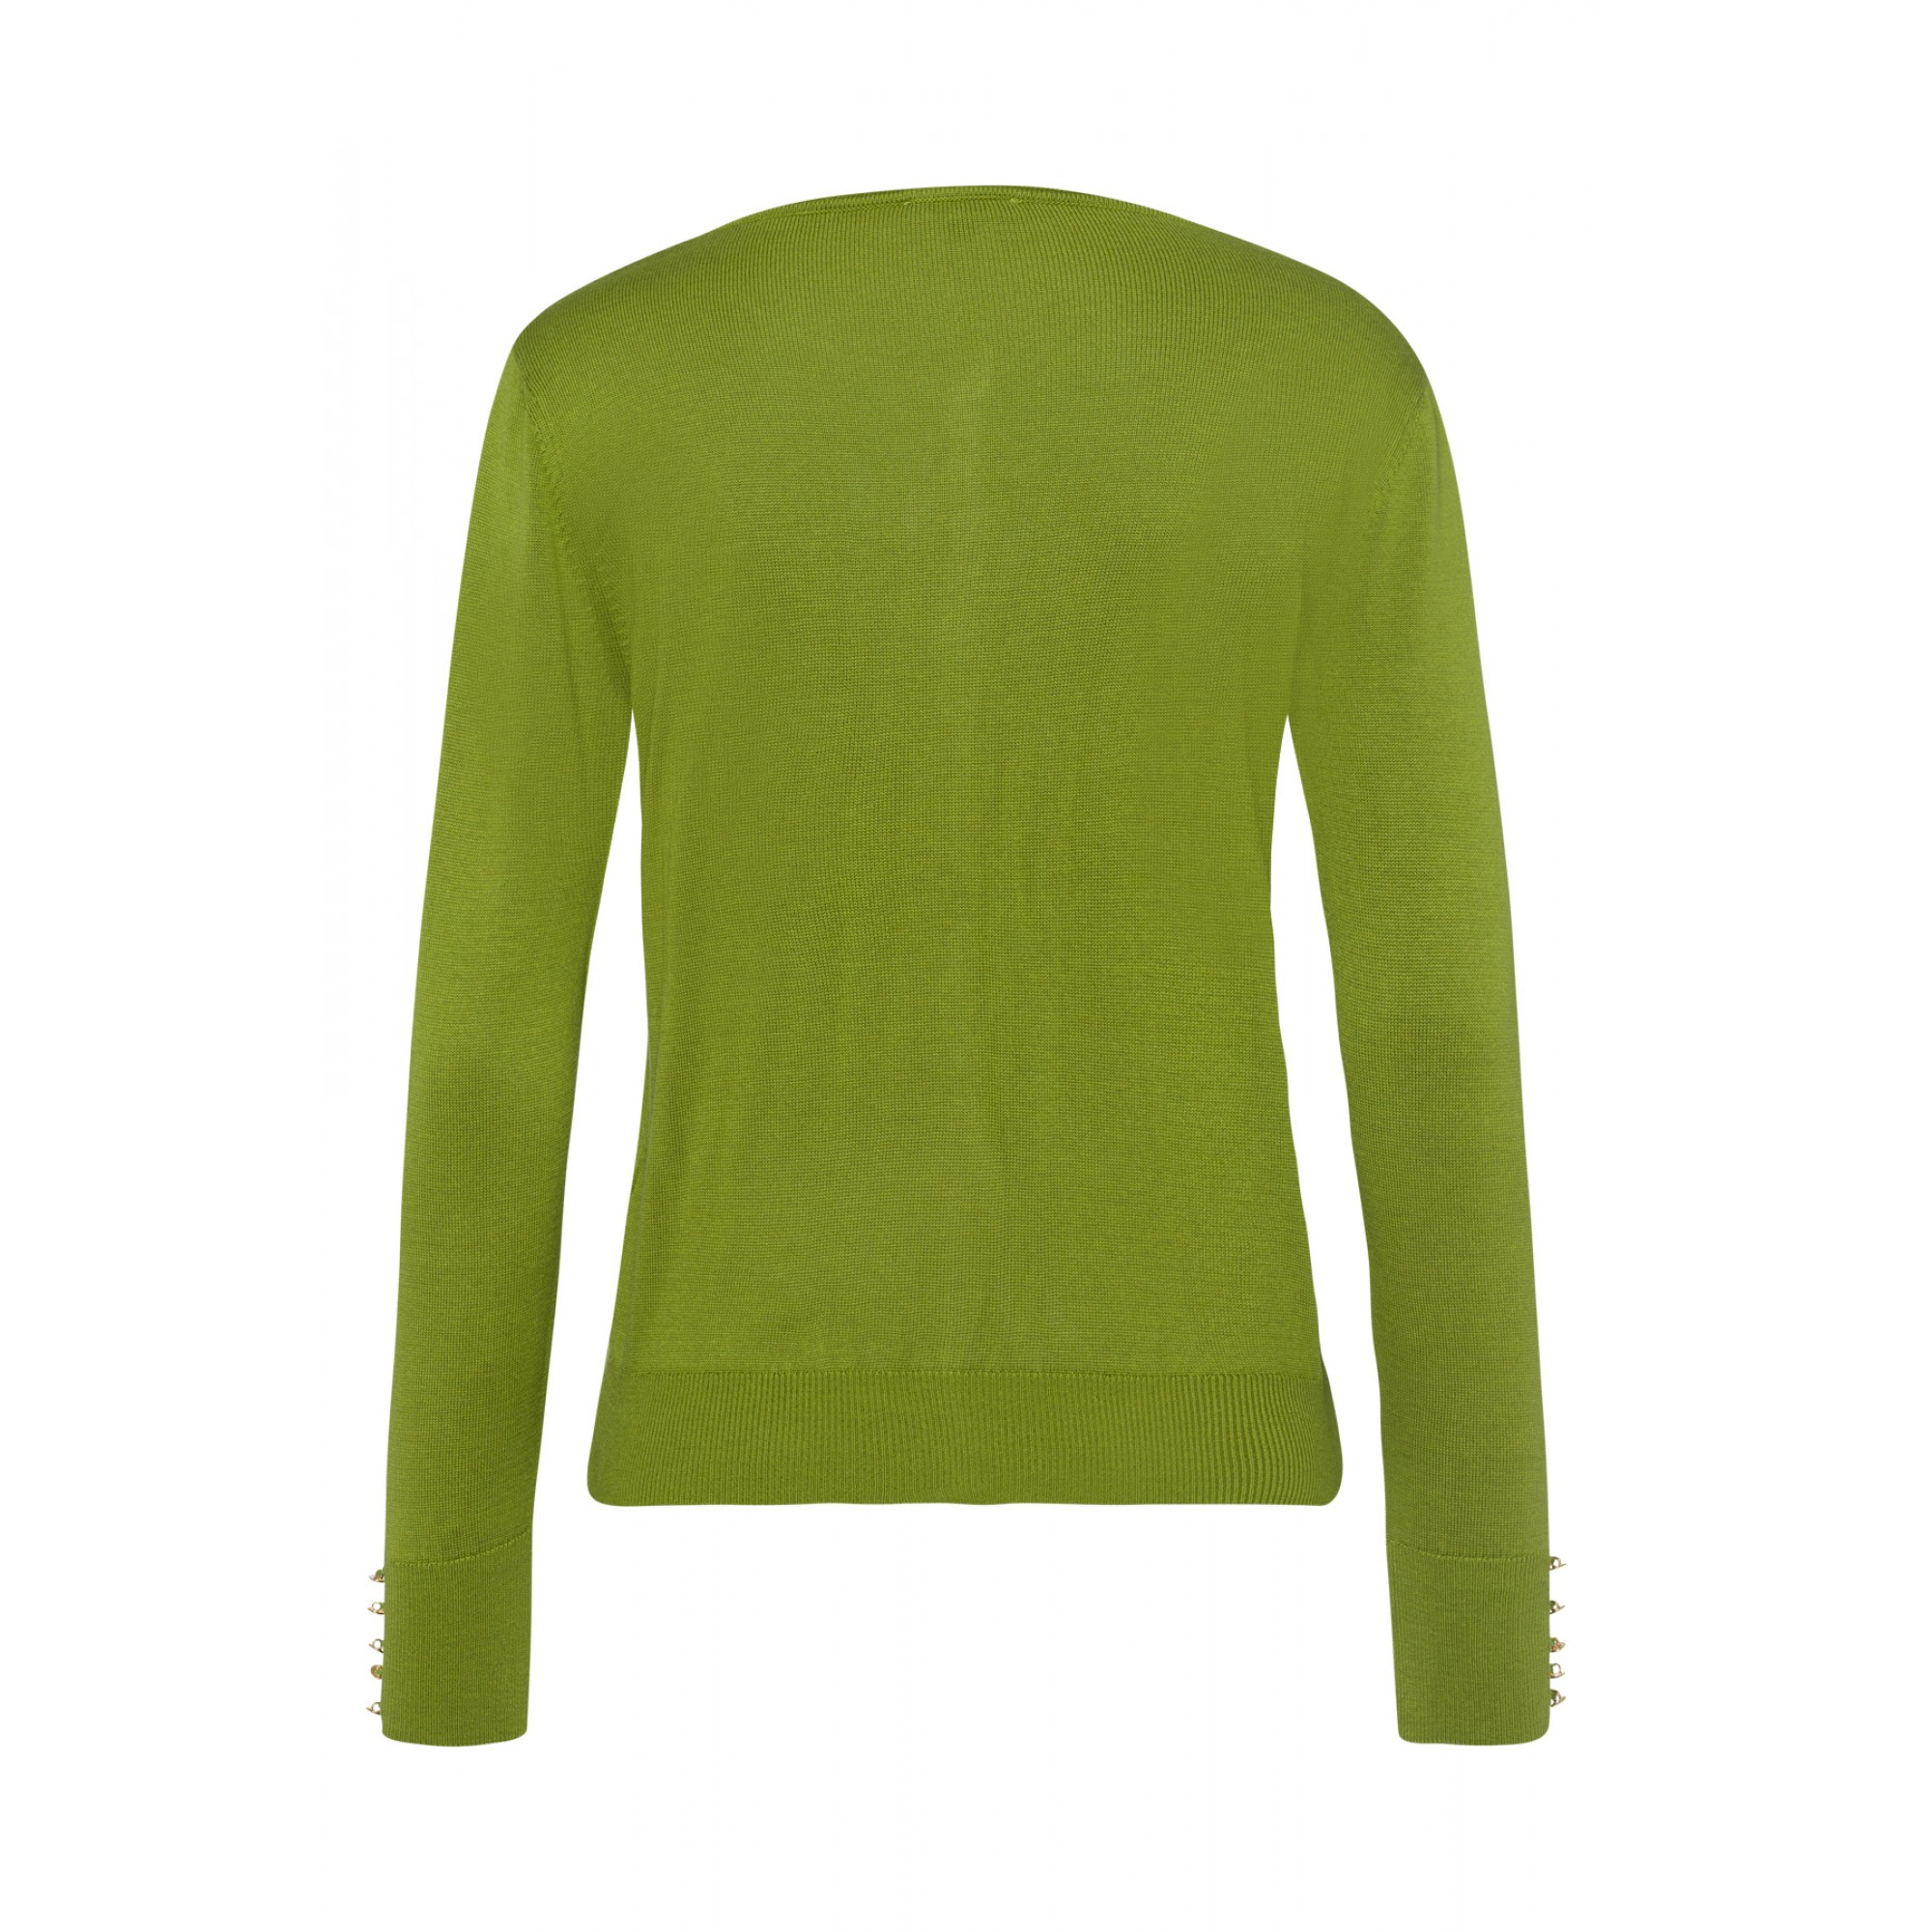 Cardigan, leaf green 01091208-0649 2